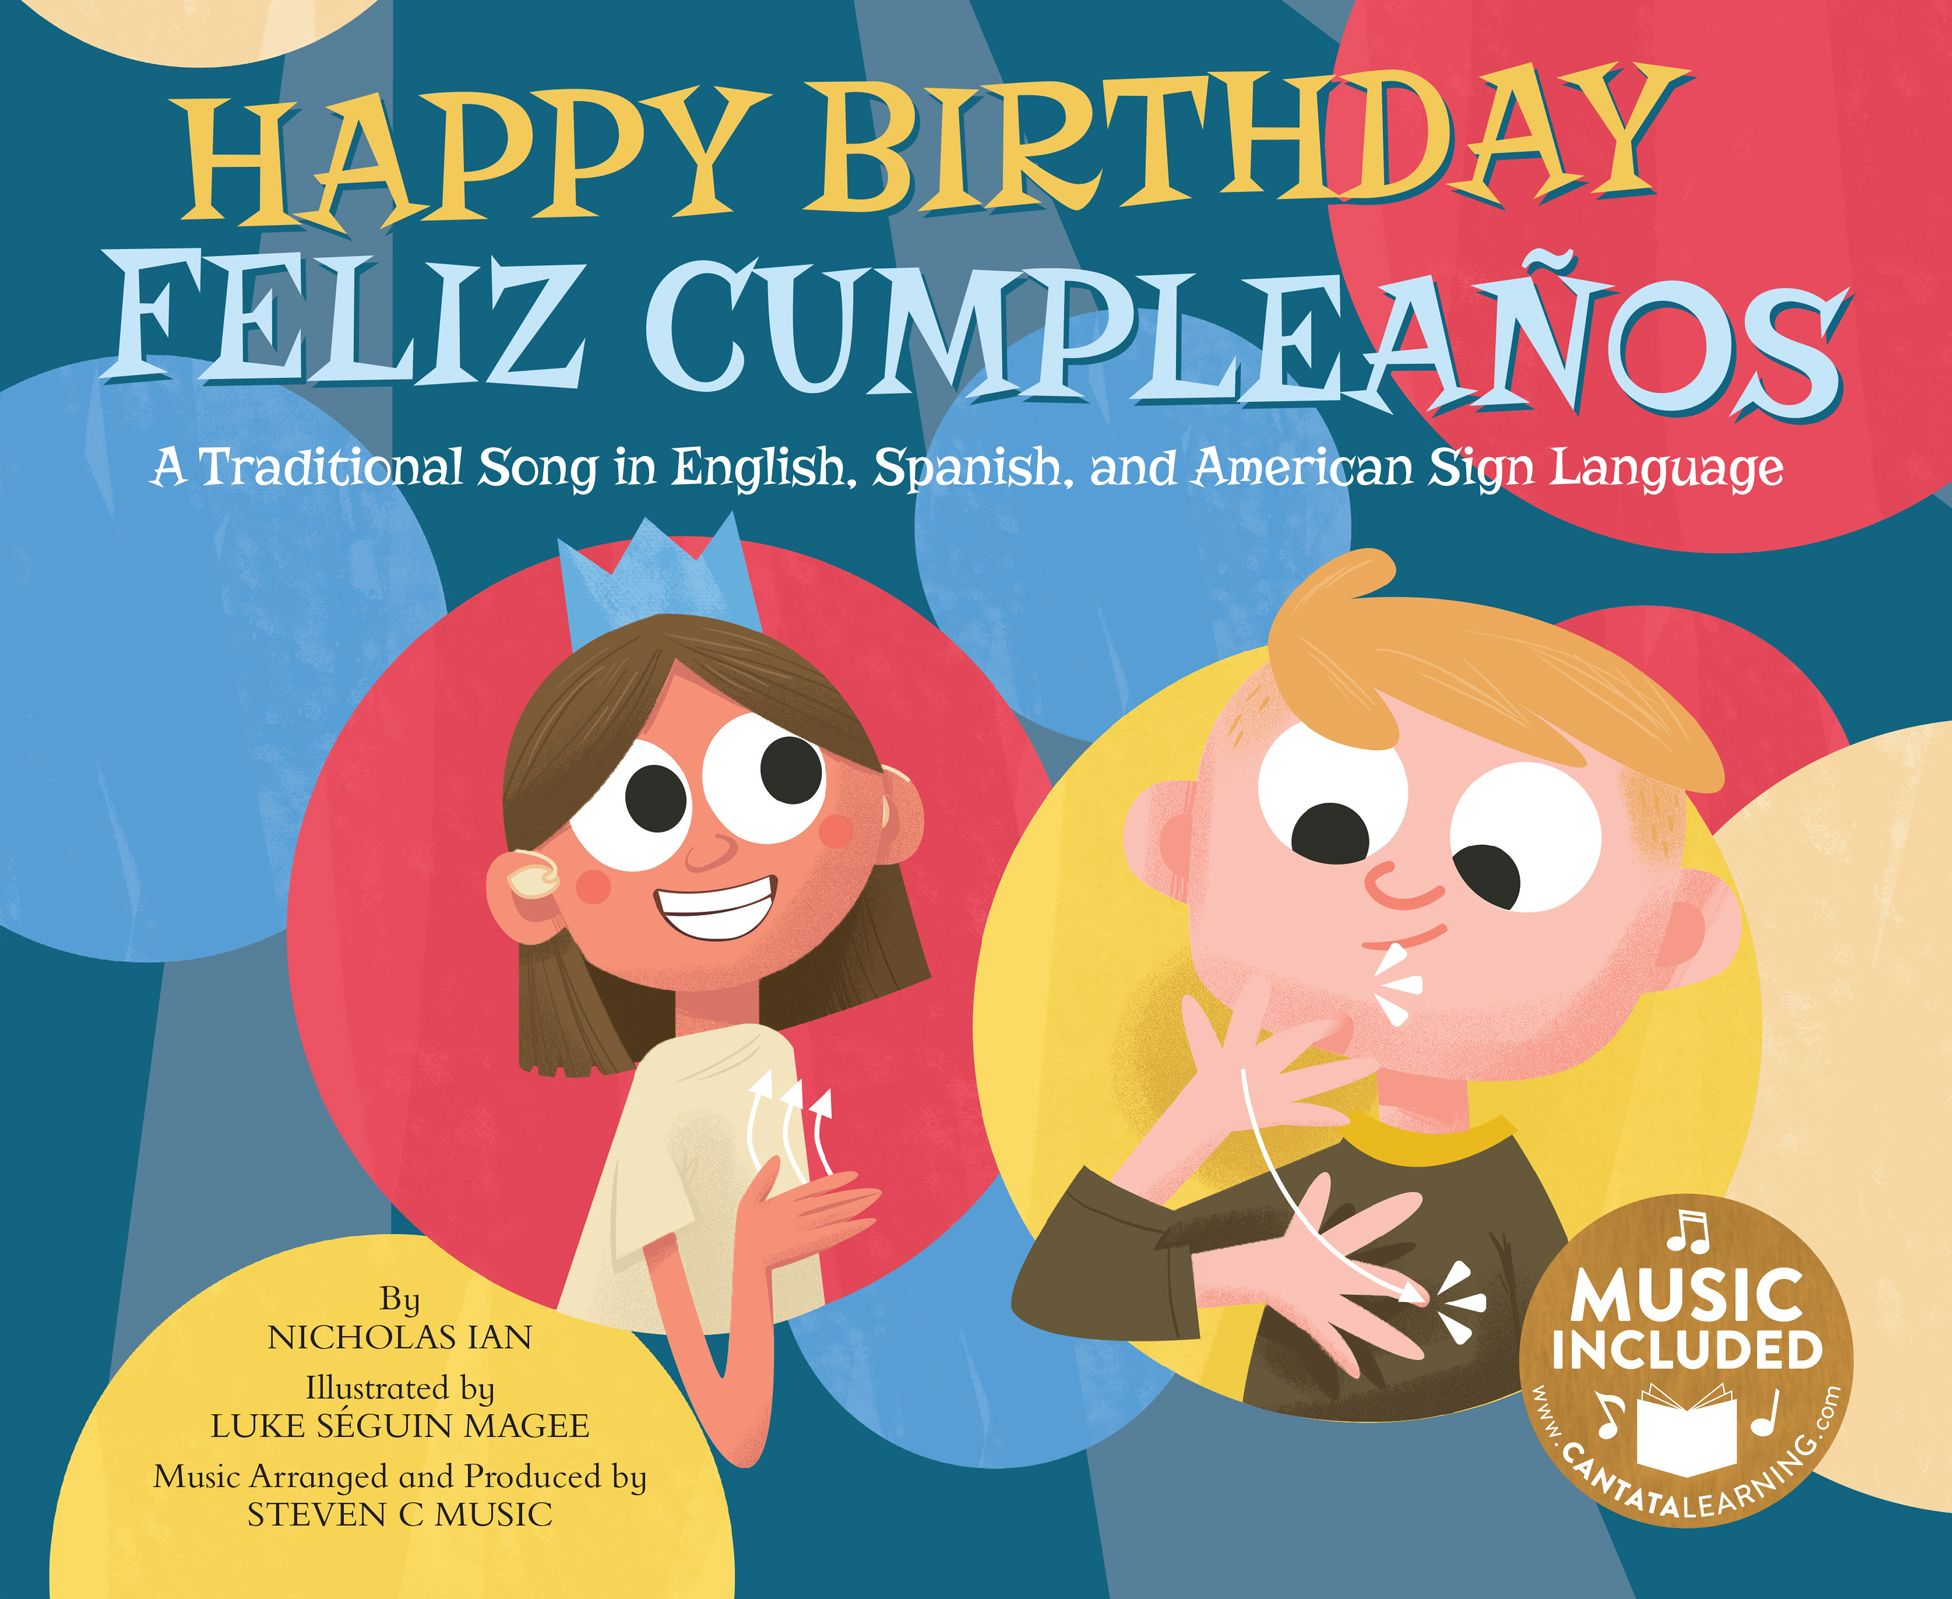 A classic birthday song sung in English, Spanish, and